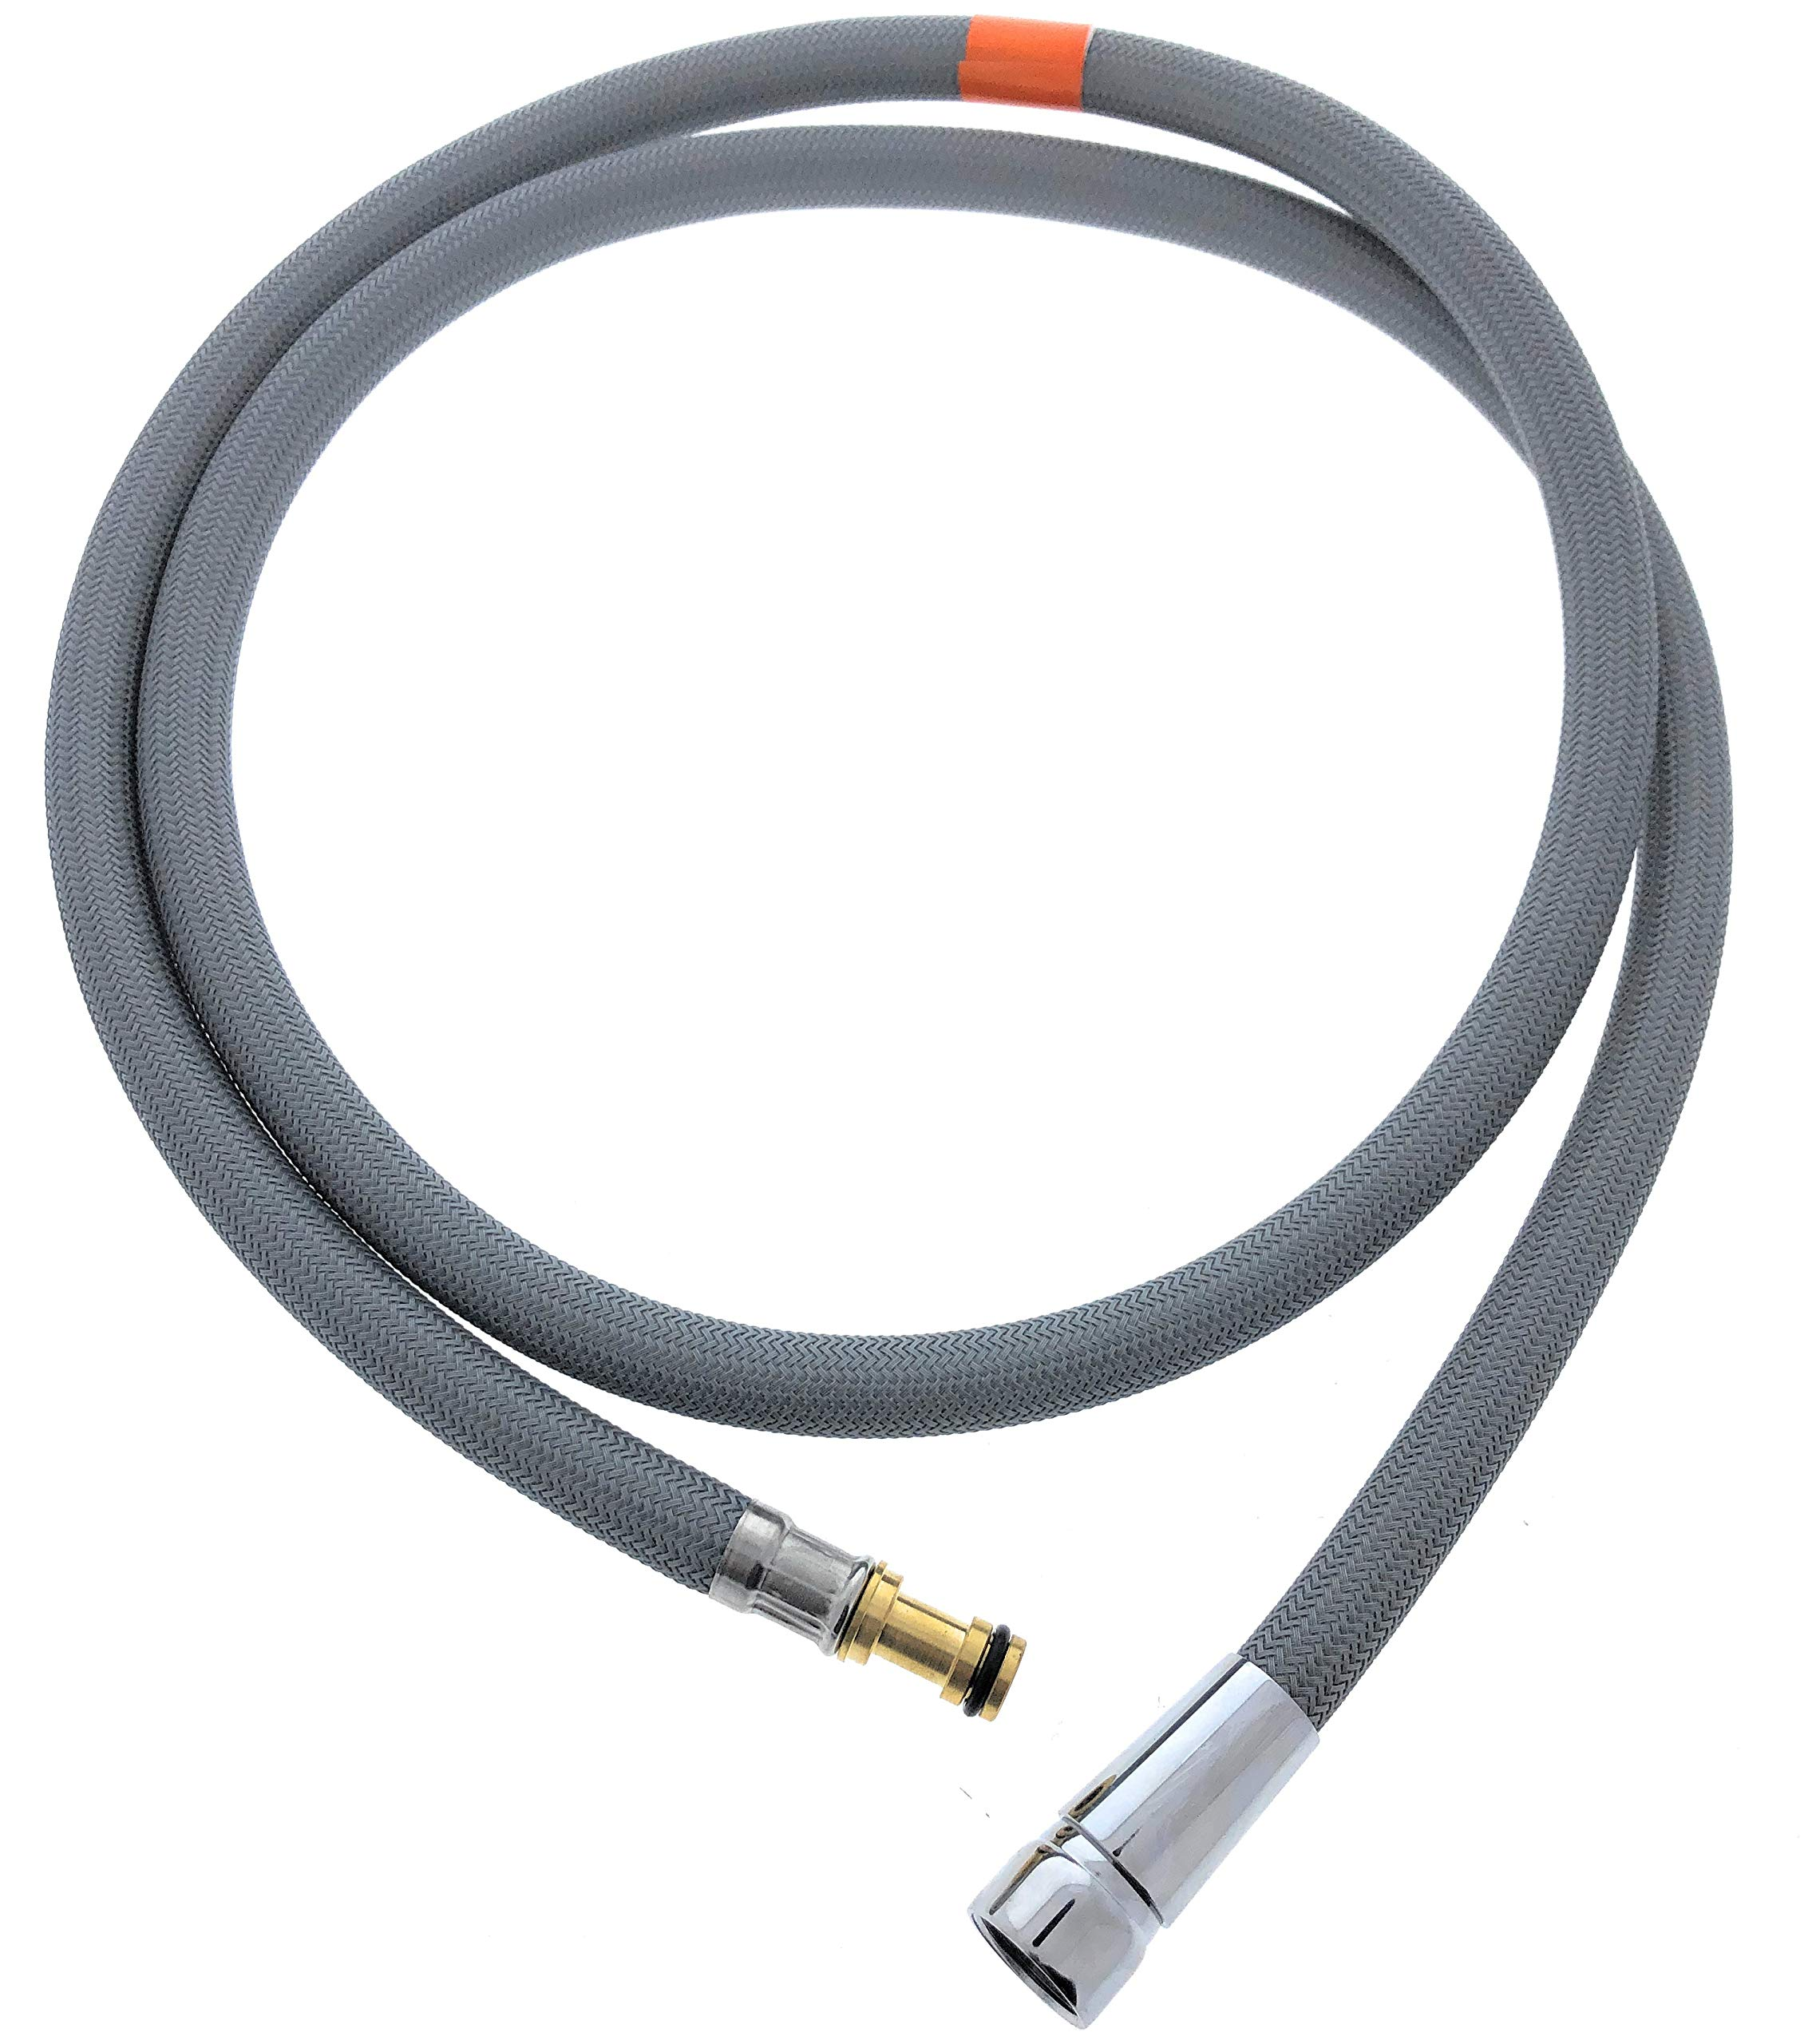 Pullout Replacement Spray Hose For Moen Kitchen Faucets 159560 Beautiful Strong Nylon Finish Sized Right At 55 Inches Fits In Place Of Moen 159560 Faucet Hose By Essential Values Amazon Sg Home Improvement